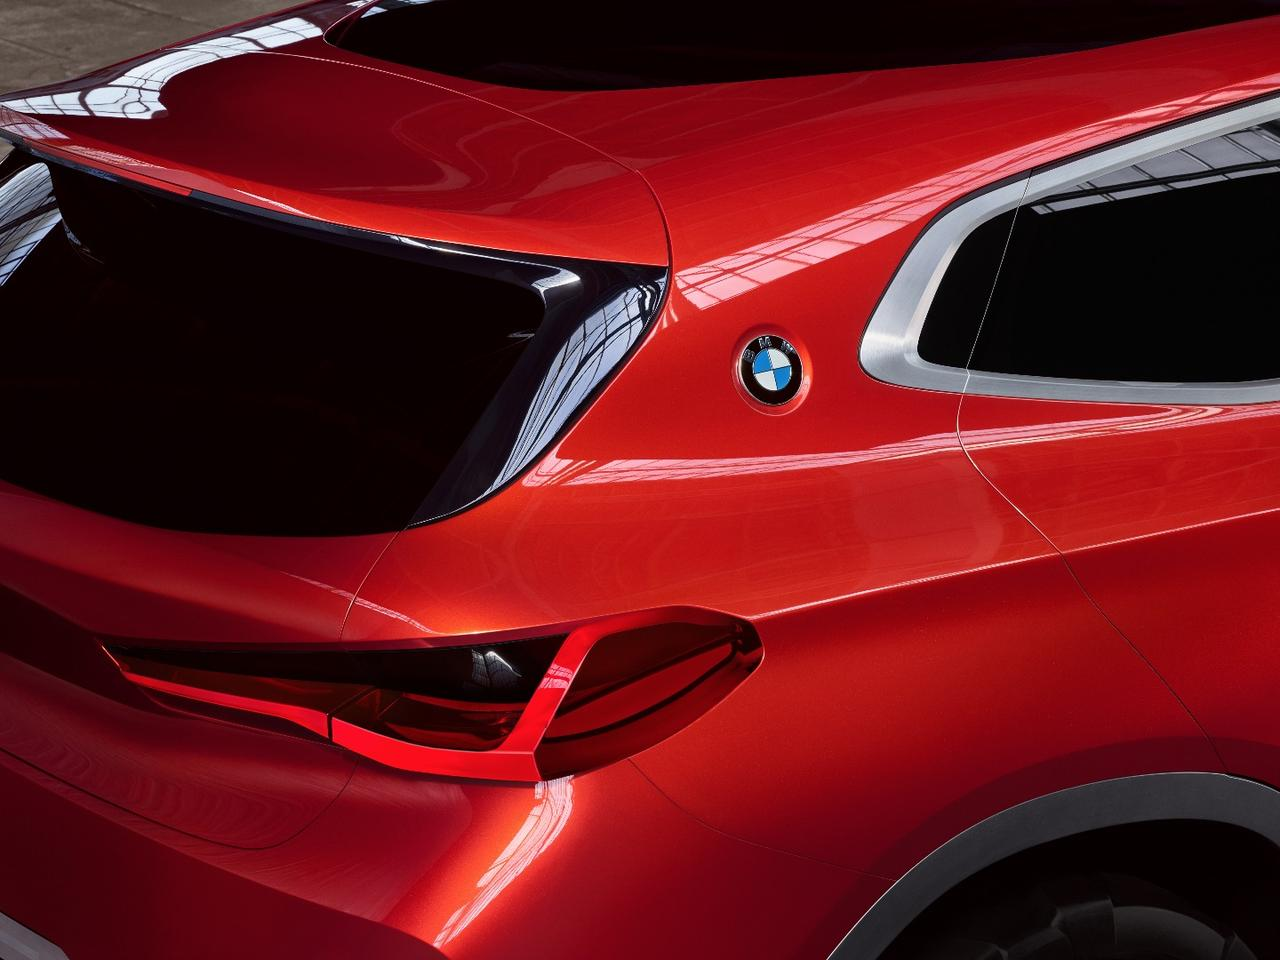 BMW has slipped a badge onto the c-pillar as a nod to its past legends